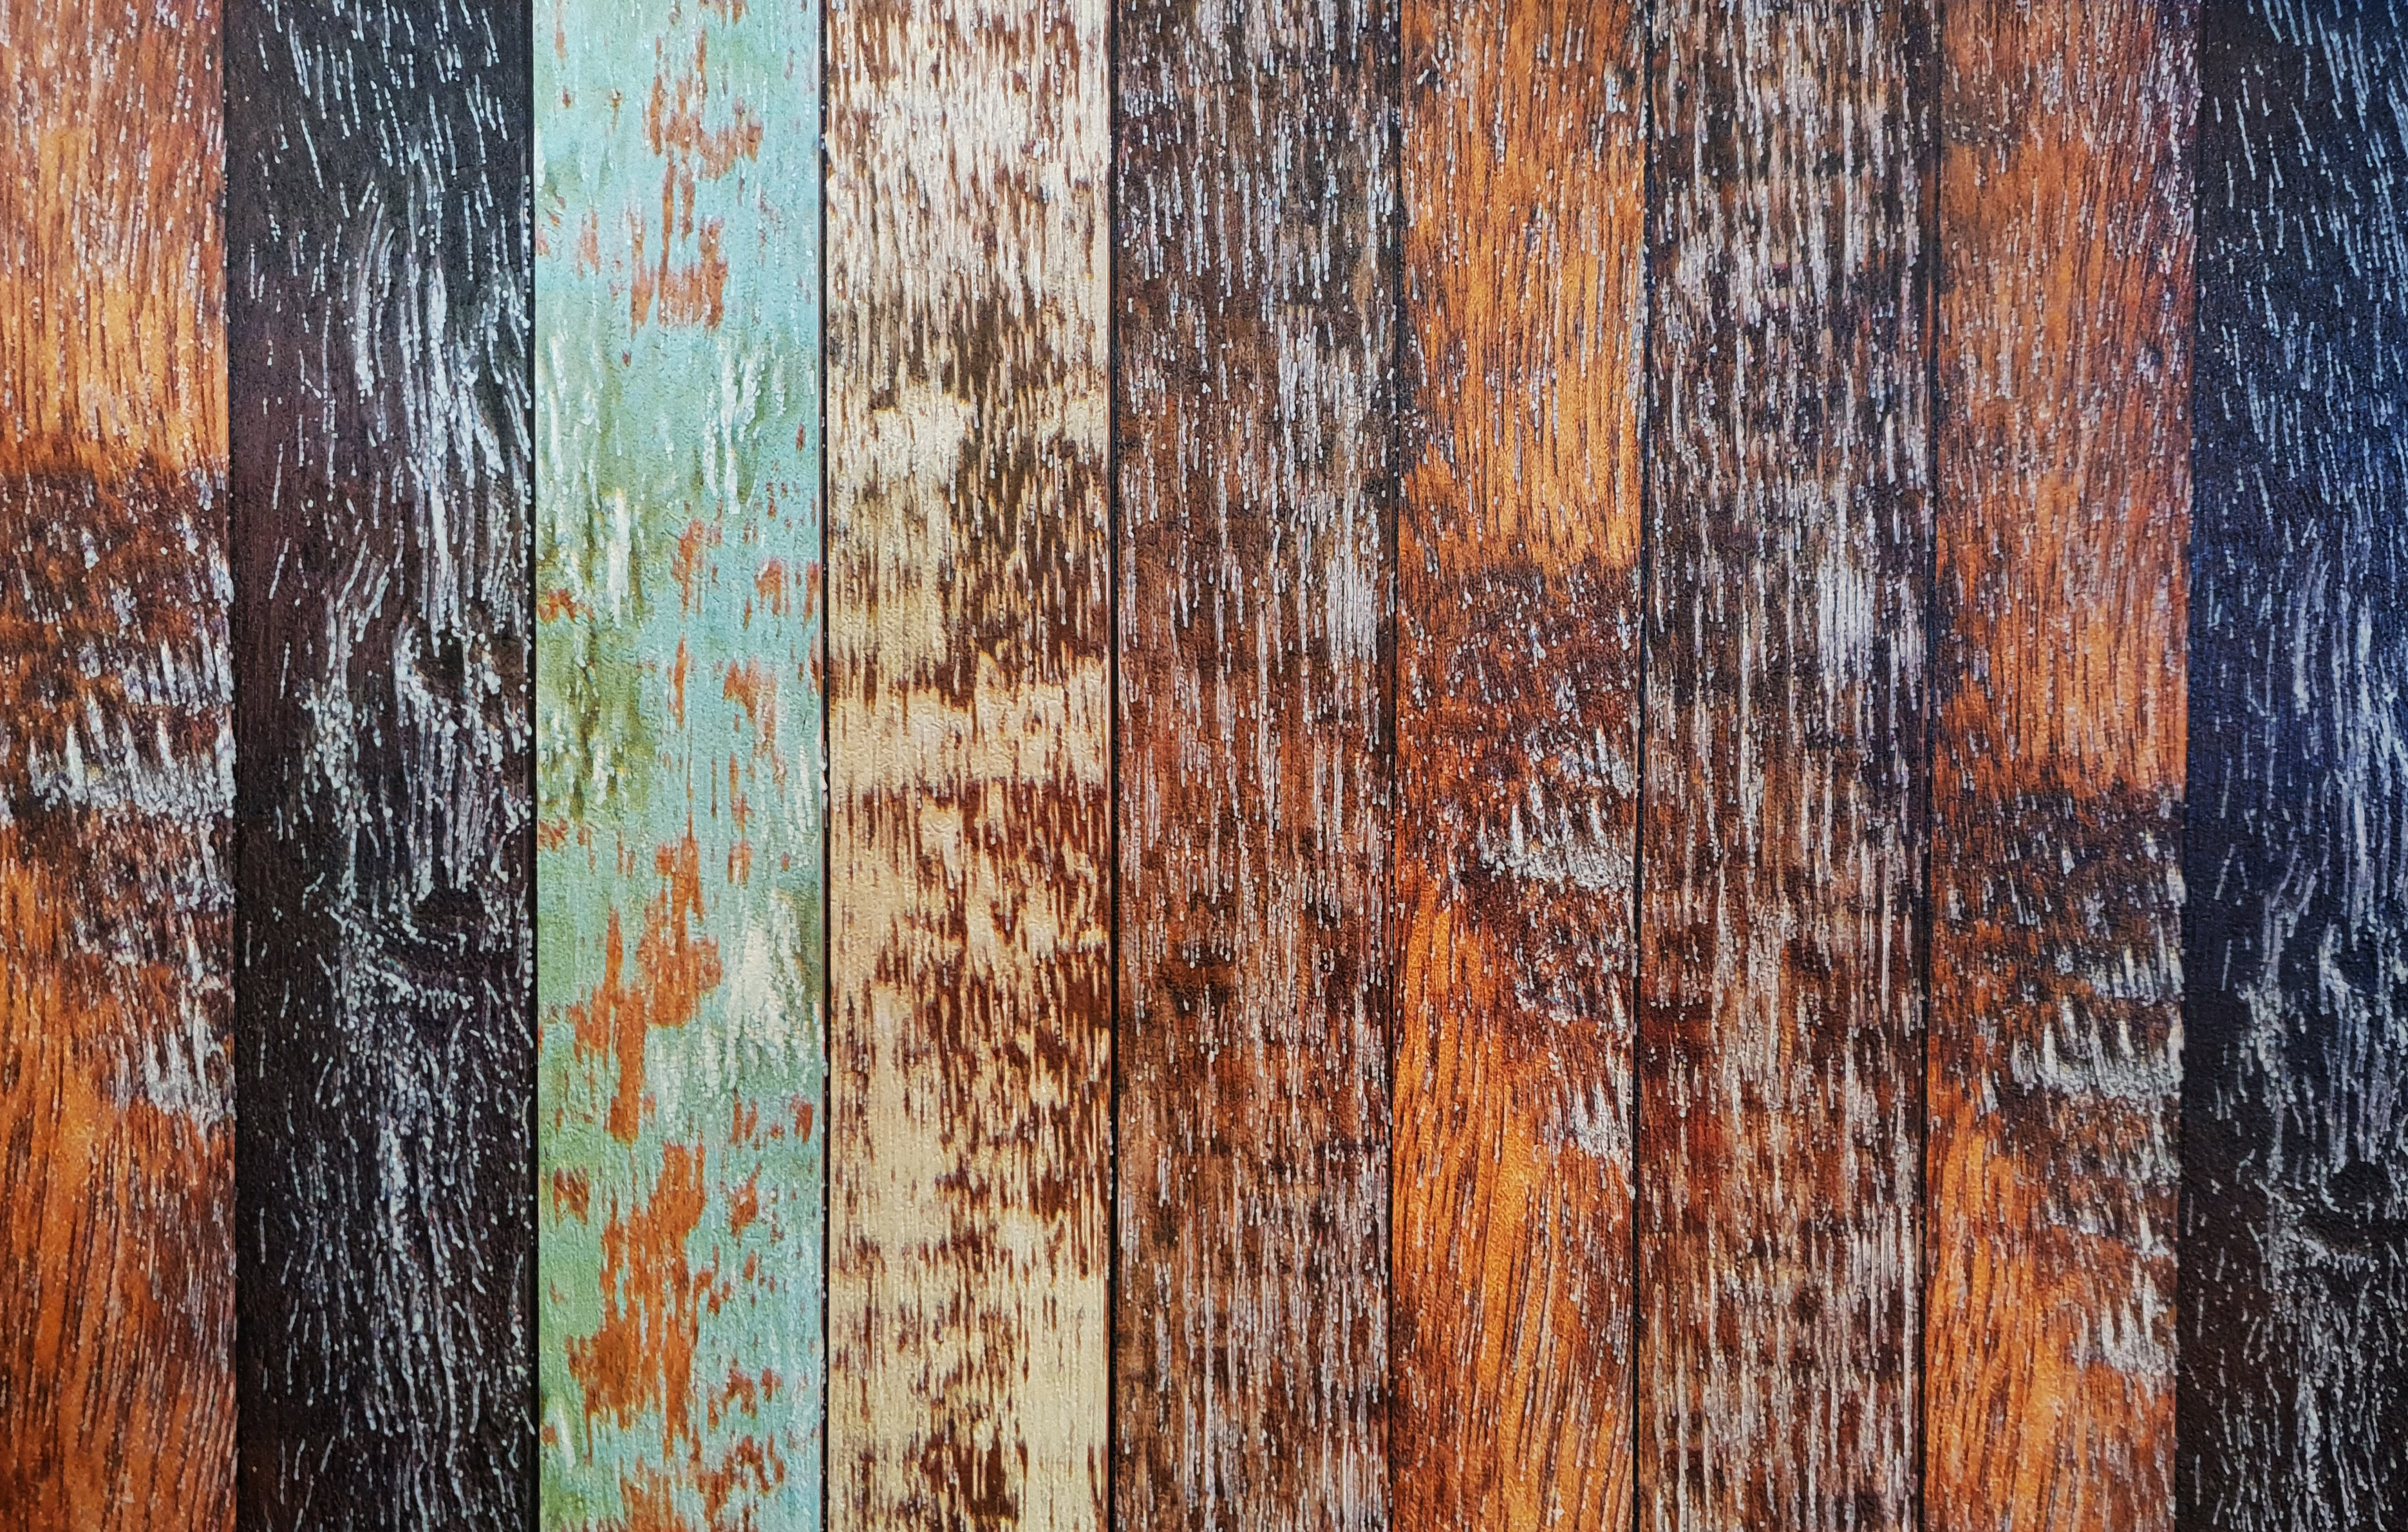 Free photo: Colourful wooden bricks - Retro, Wooden, Old